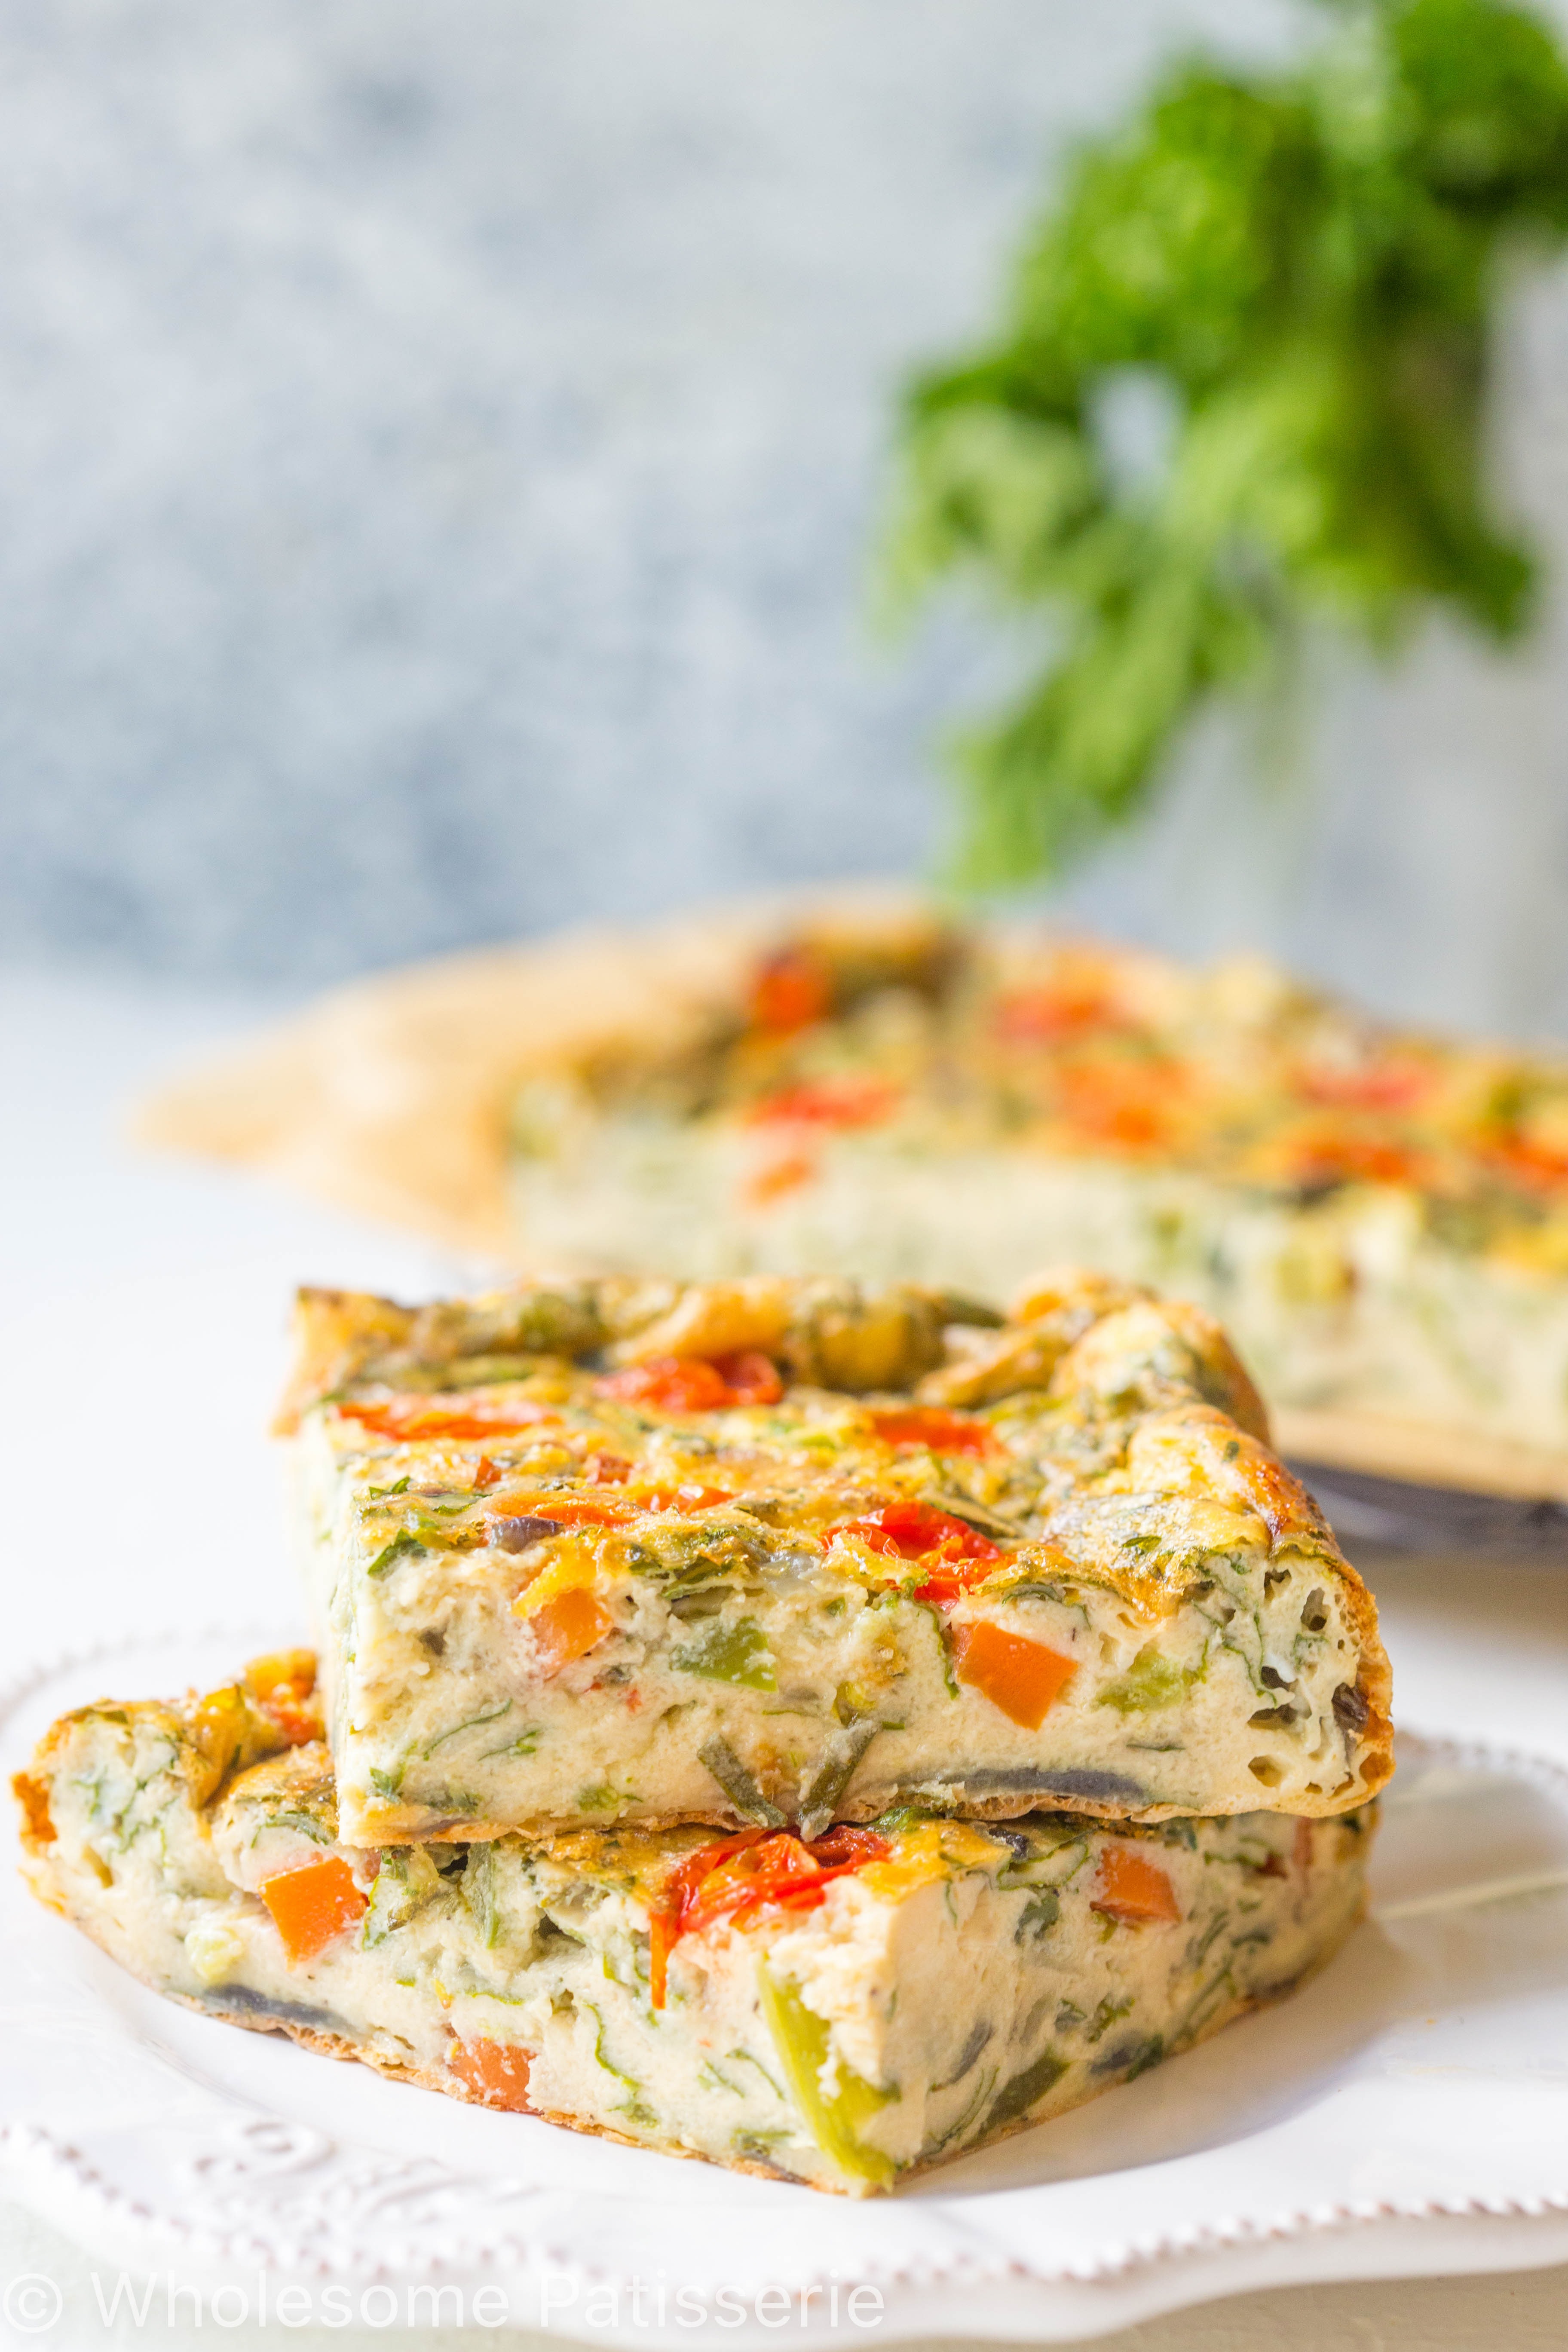 quiche-gluten-free-vegetable-quiche-simple-crustless-delicious-amazing